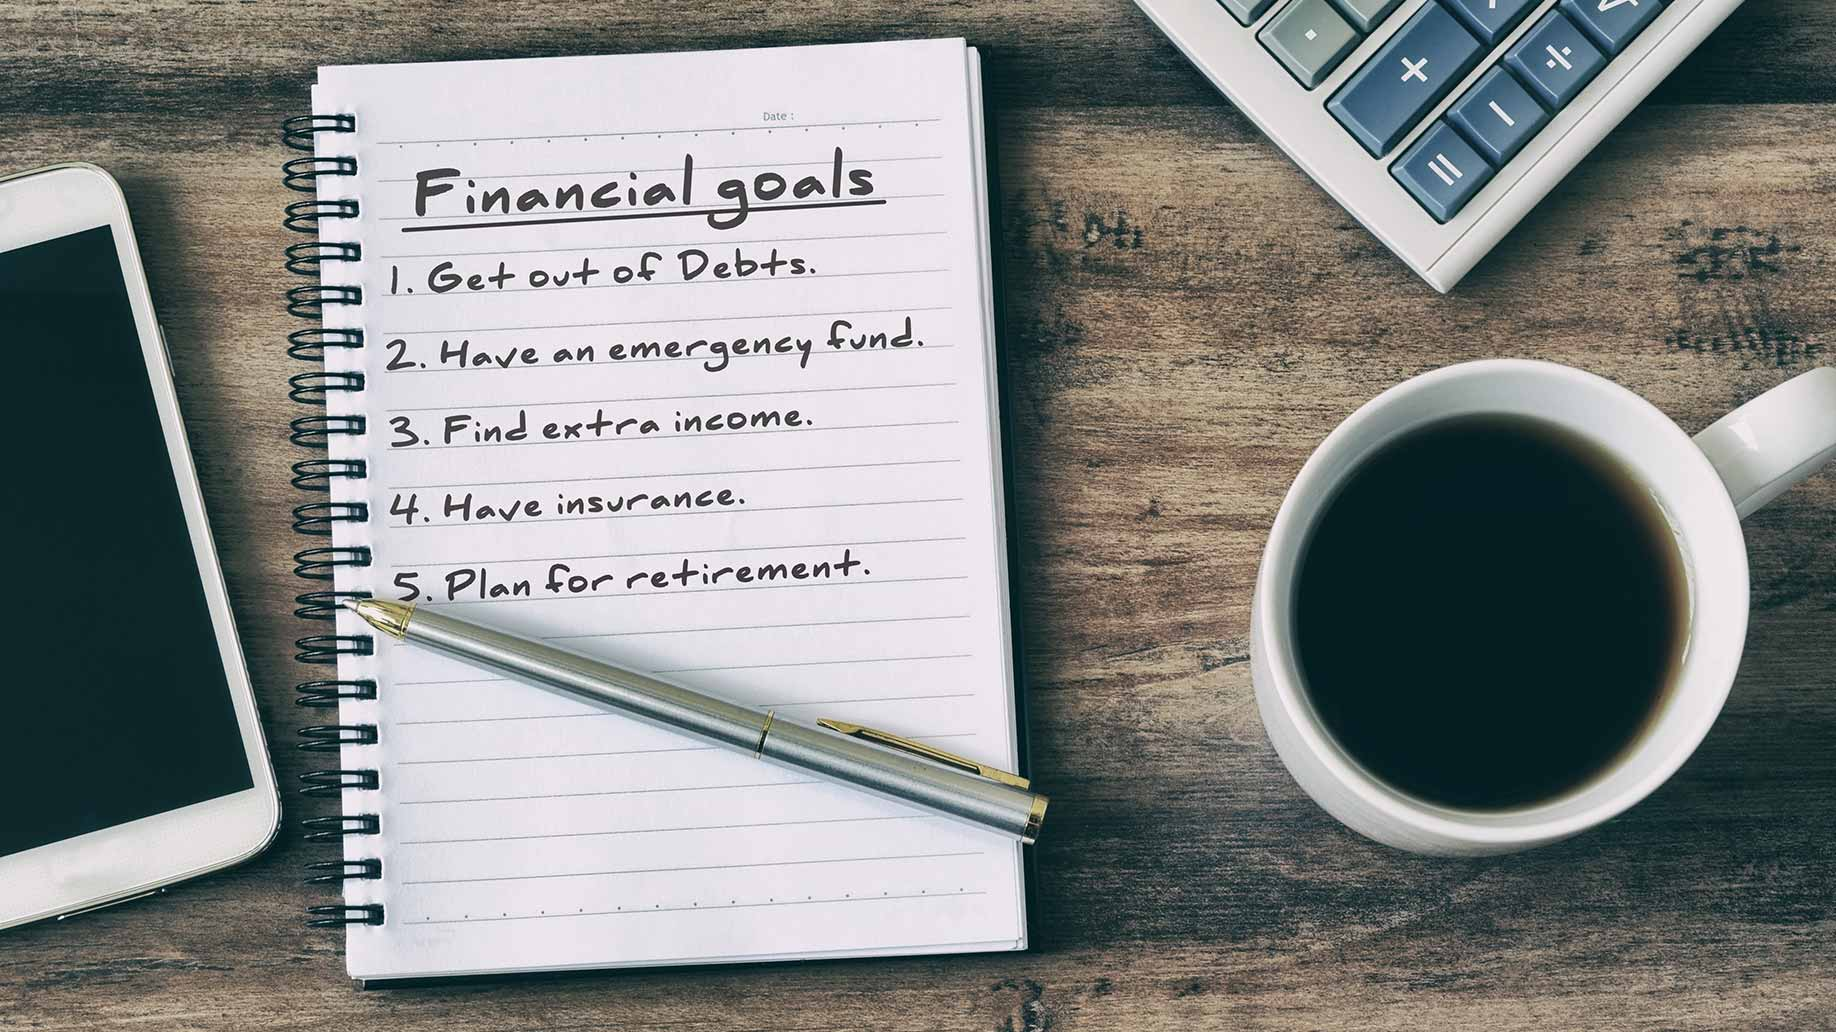 prioritize financial goals notebook